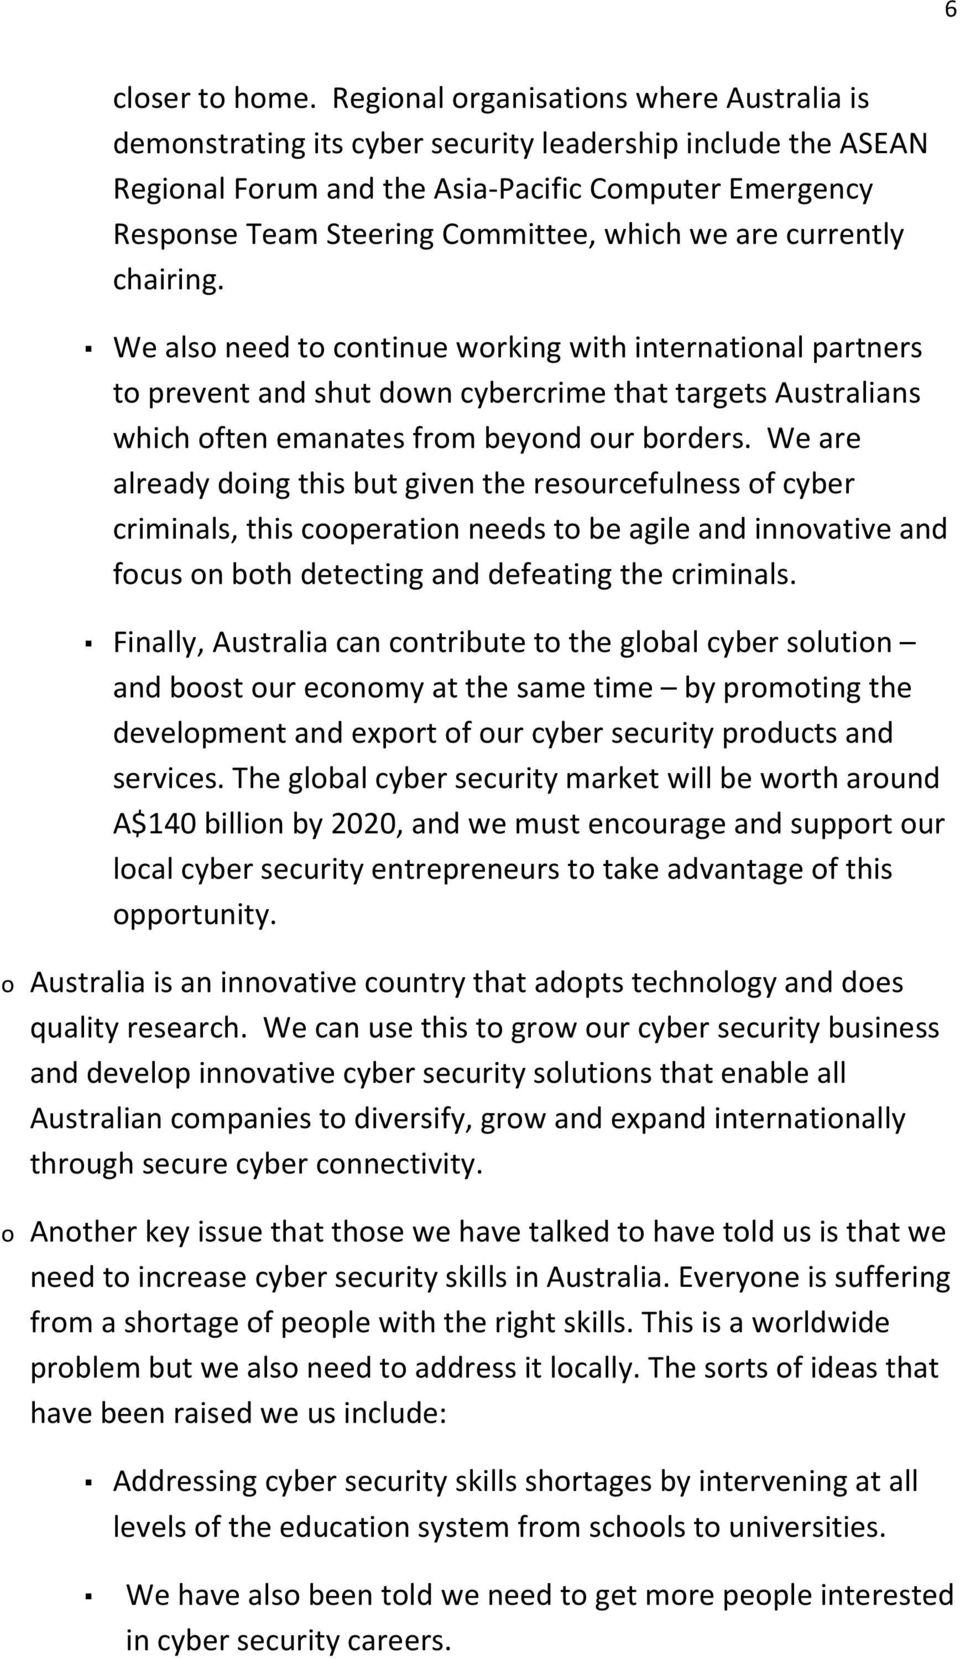 we are currently chairing. We also need to continue working with international partners to prevent and shut down cybercrime that targets Australians which often emanates from beyond our borders.